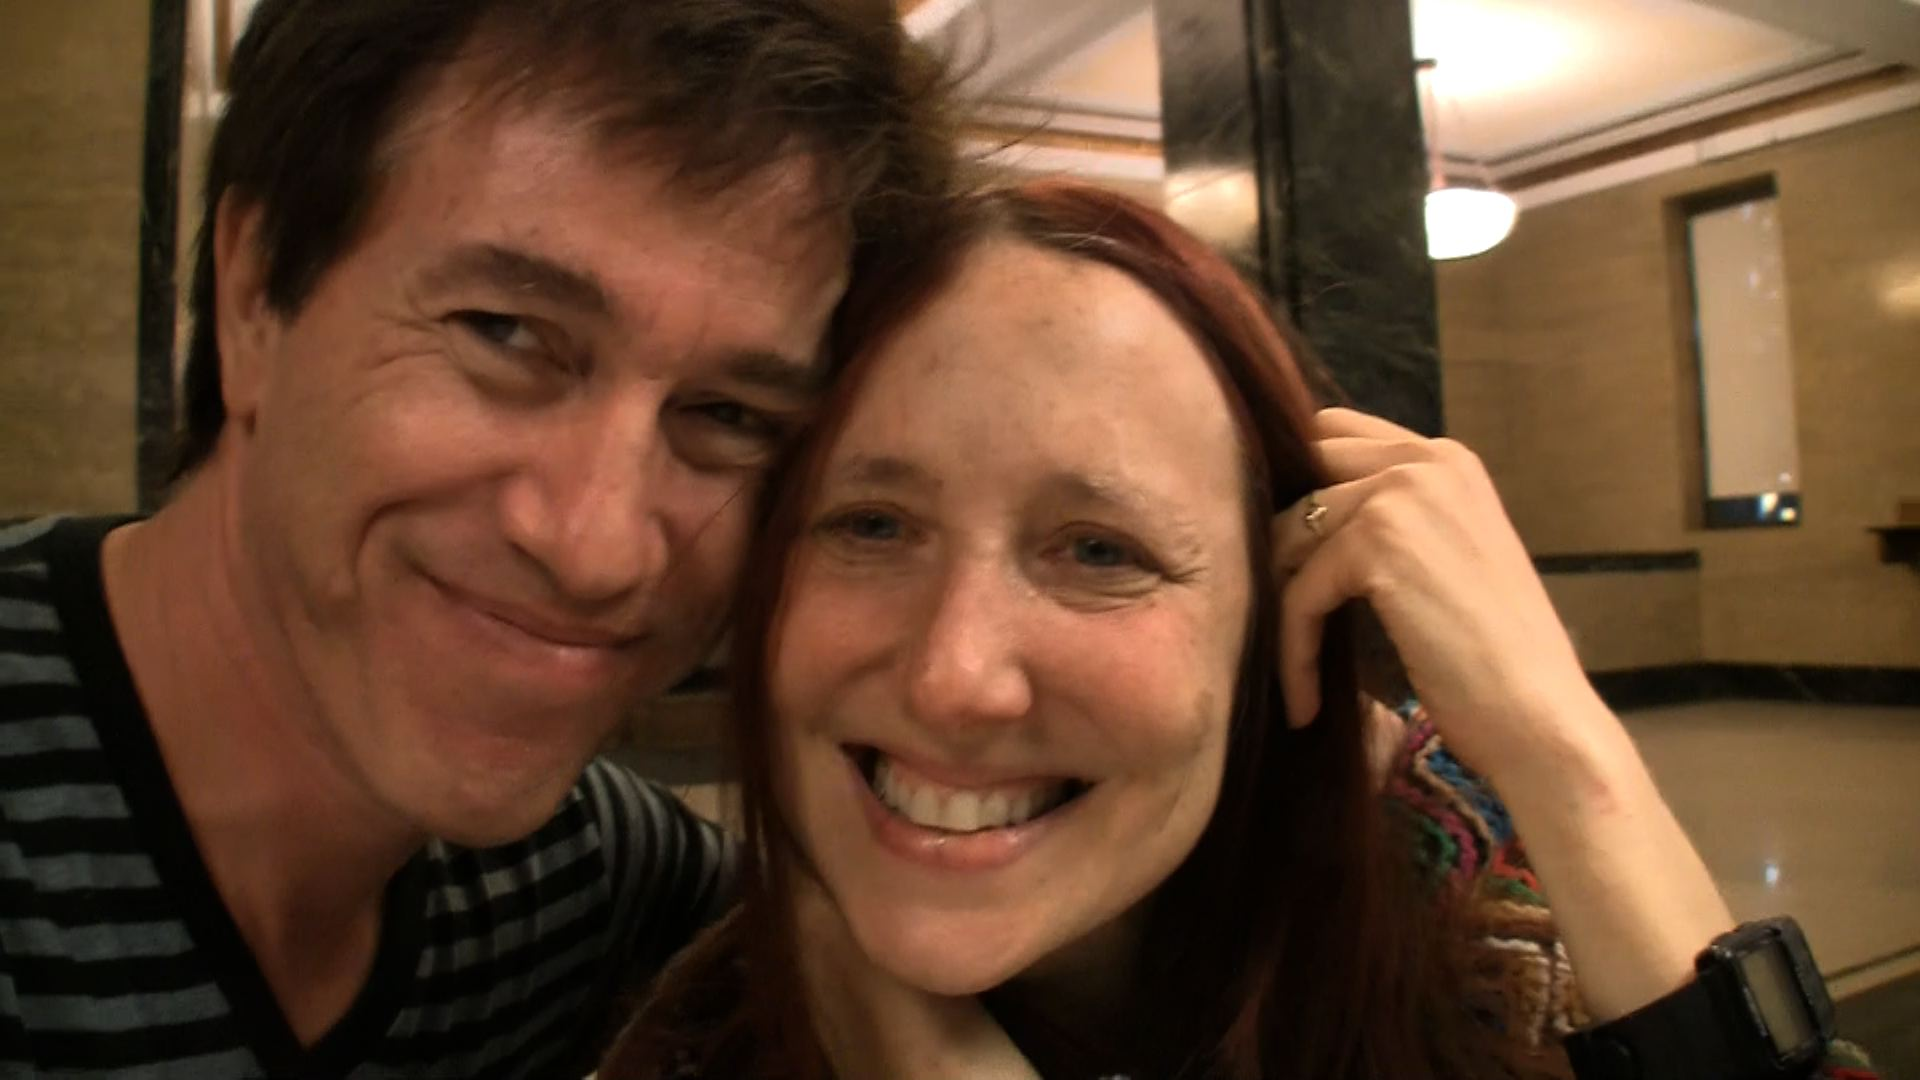 Lisa & Phil at City Hall just after receiving theirmarriage license